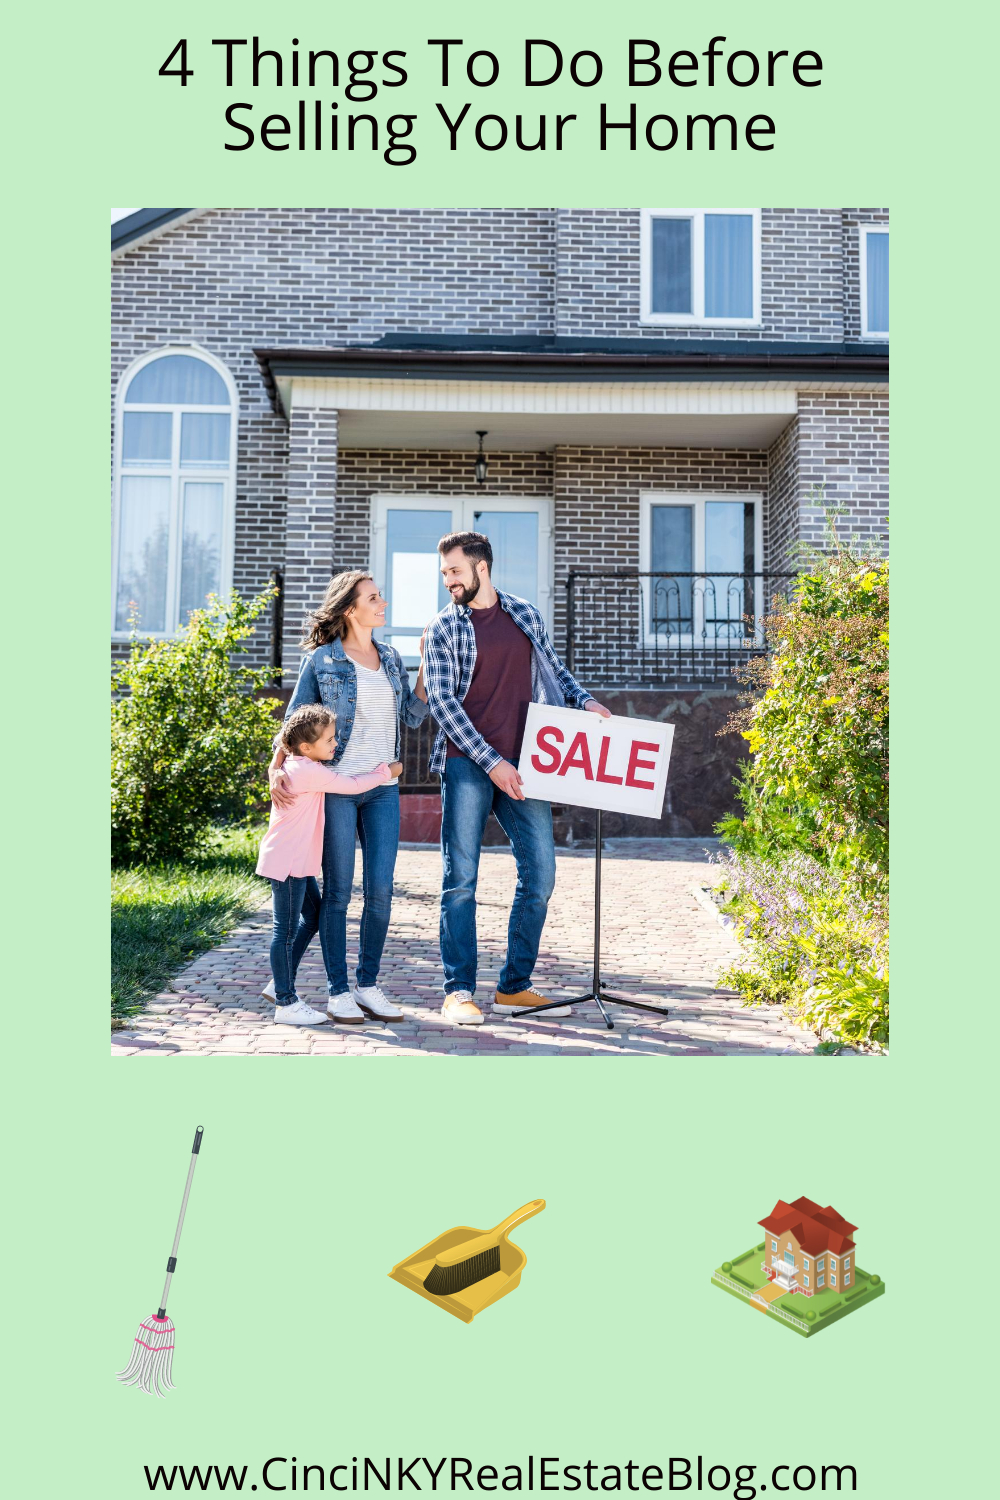 4 Things To Do Before Selling Your Home